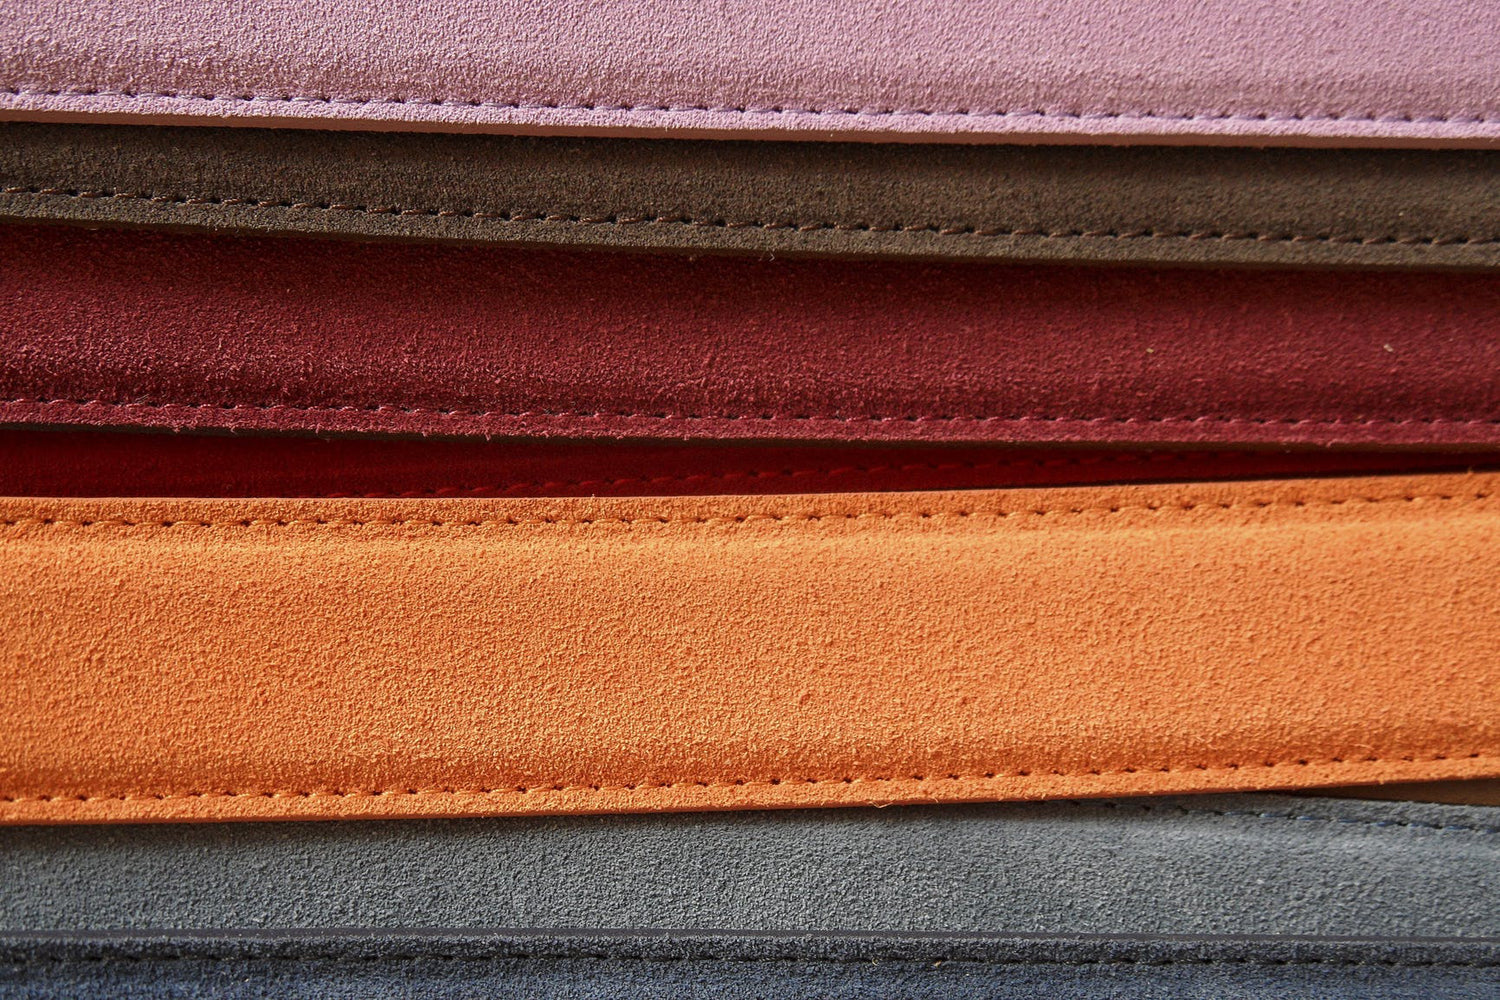 3 TOP QUALITY leather for crafting engraved wallet (informative)